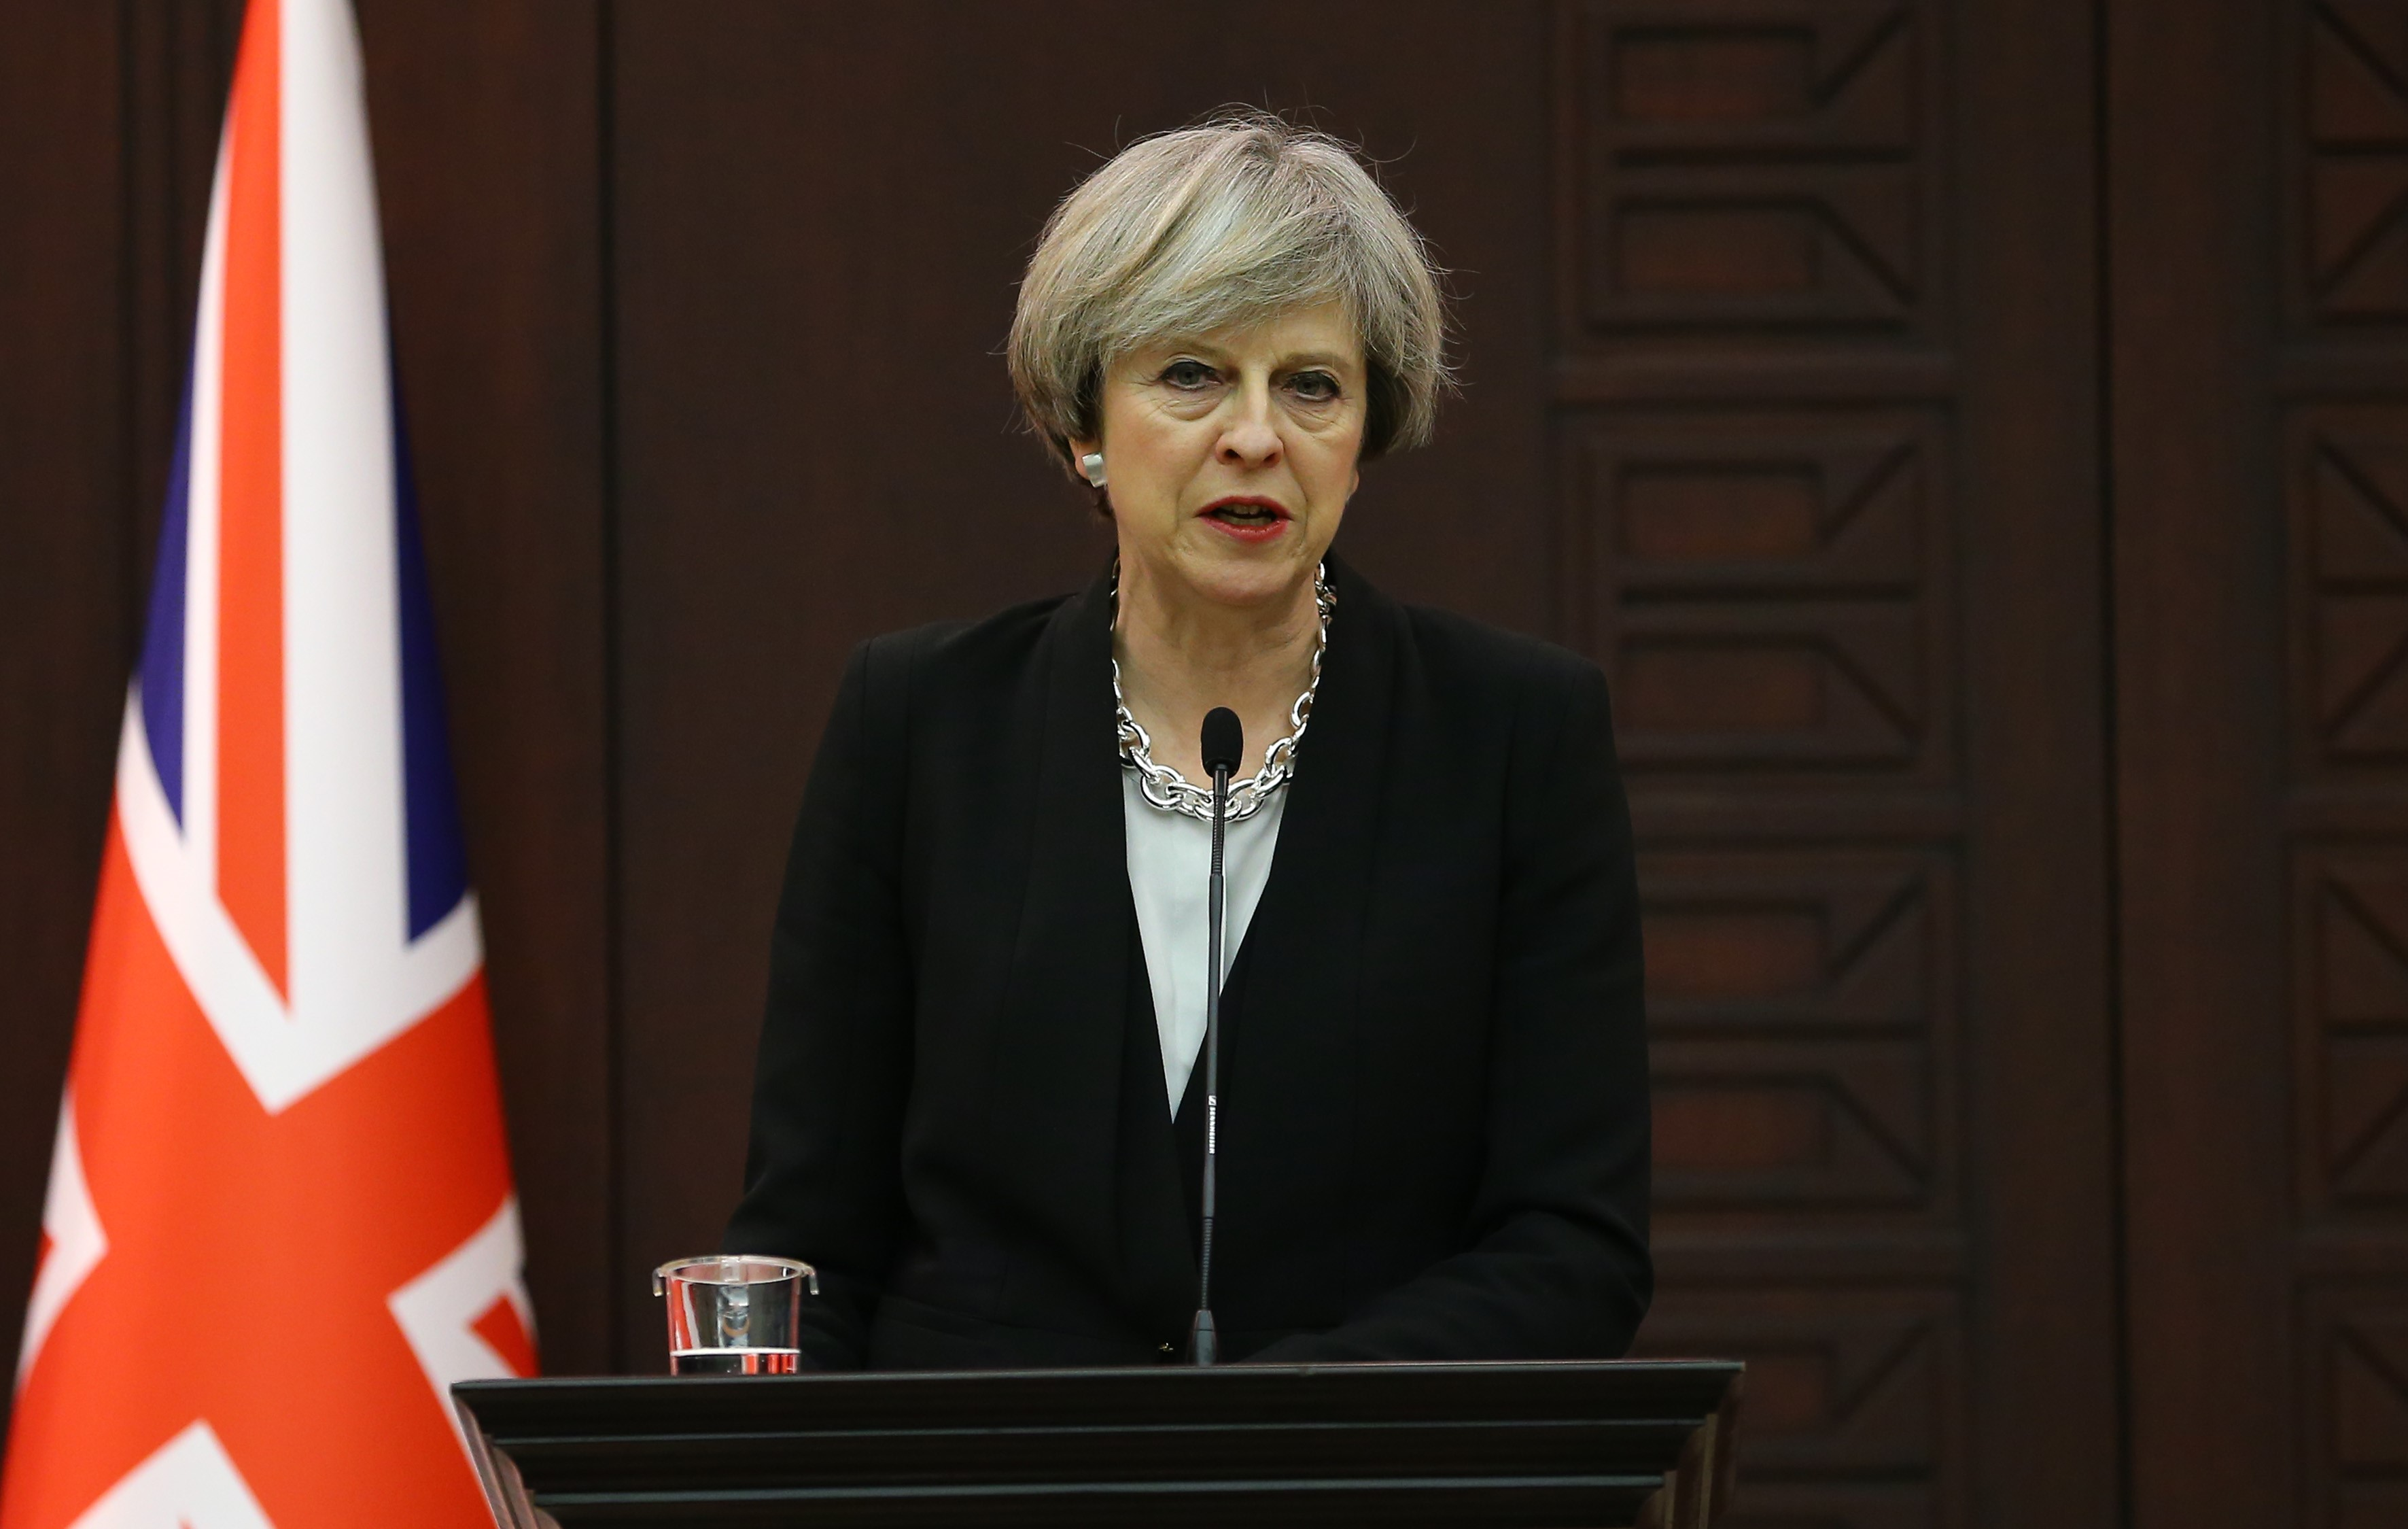 British Prime Minister Theresa May delivers a speech during a joint press conference with Turkish Prime Minister Binali Yildirim (not seen) at the Cankaya Mansion in Ankara, Turkey on January 28, 2017.